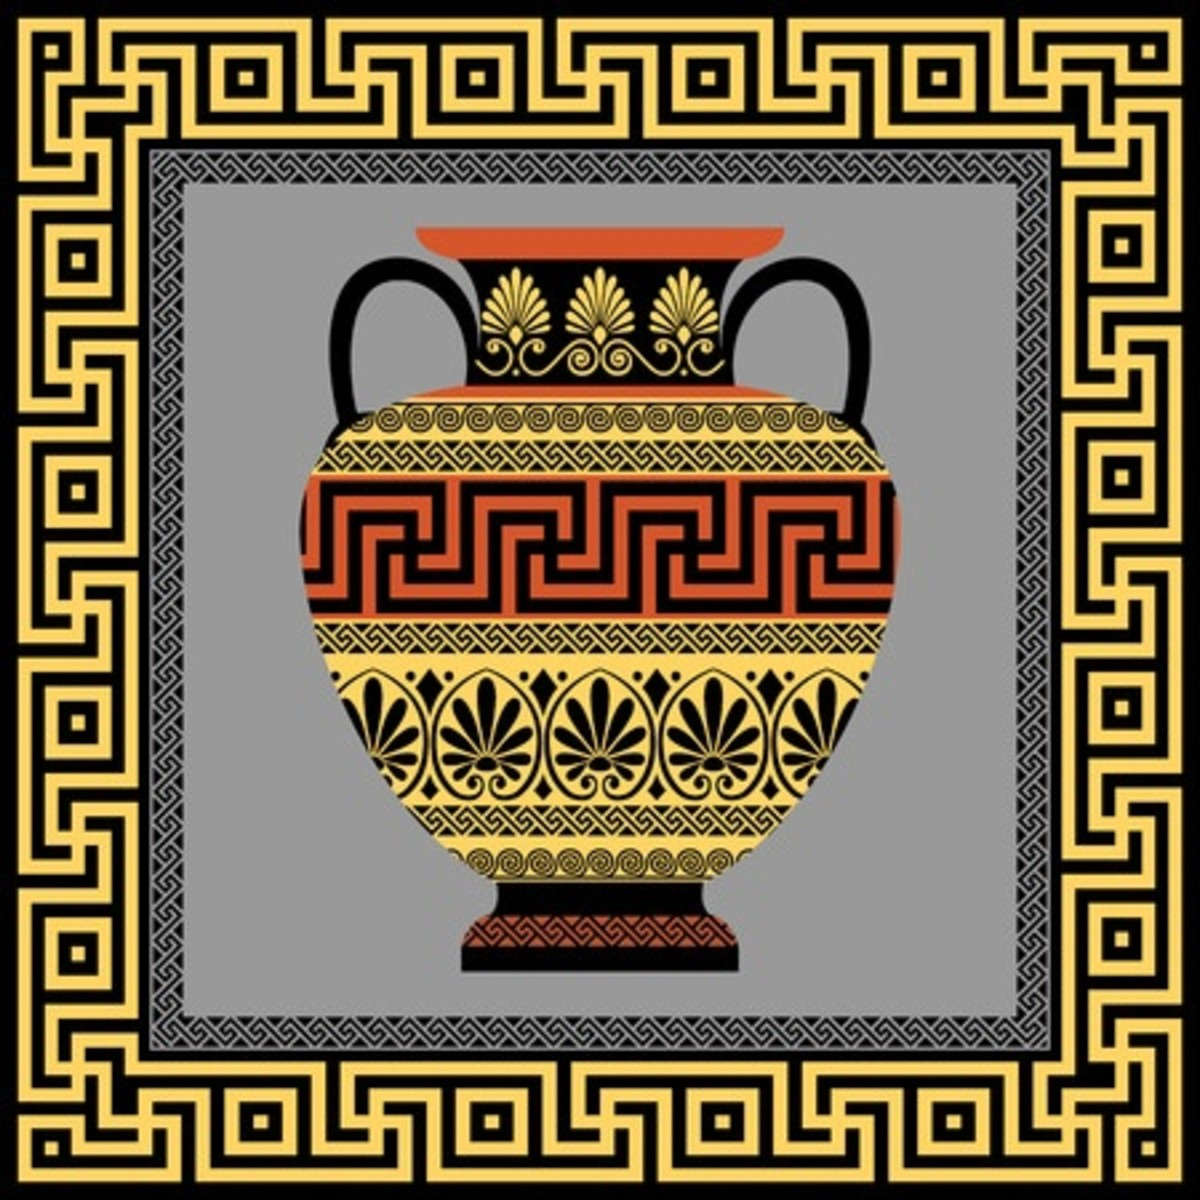 Grecian urns have a beauty all of their own and are popular souvenirs